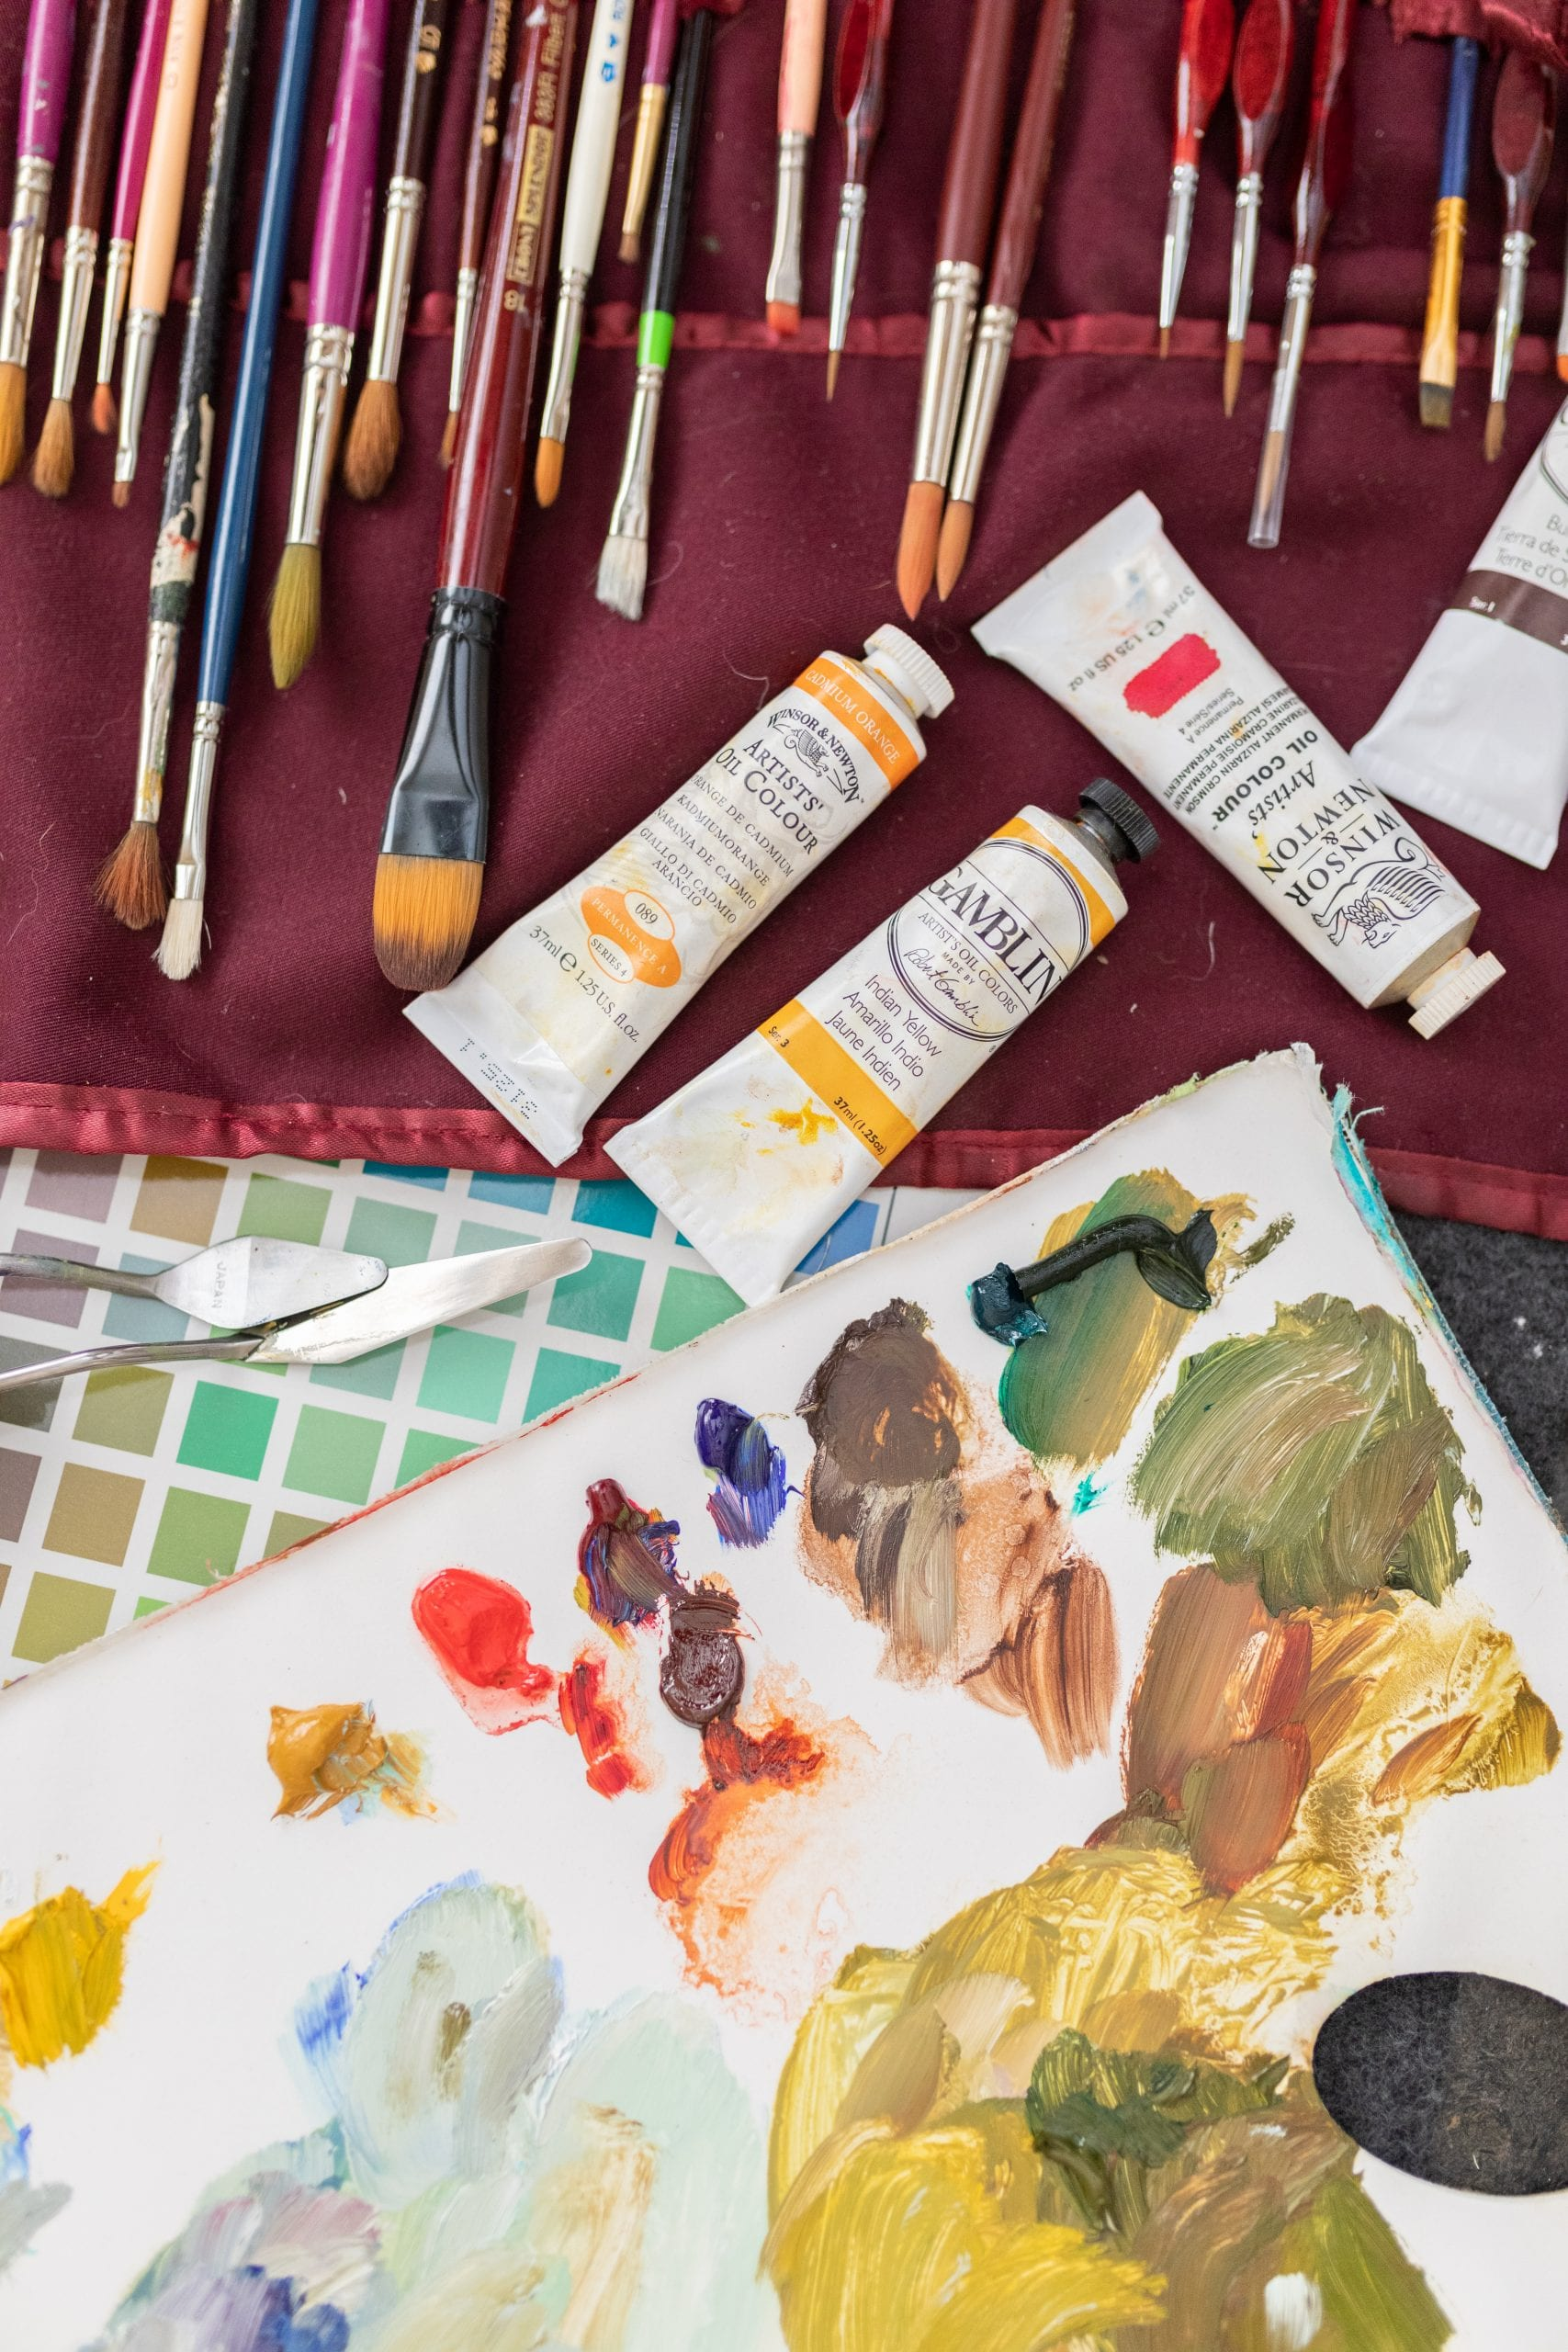 Peggy's paint brushes, mixing palette, and a few tubes of oil paint colours.